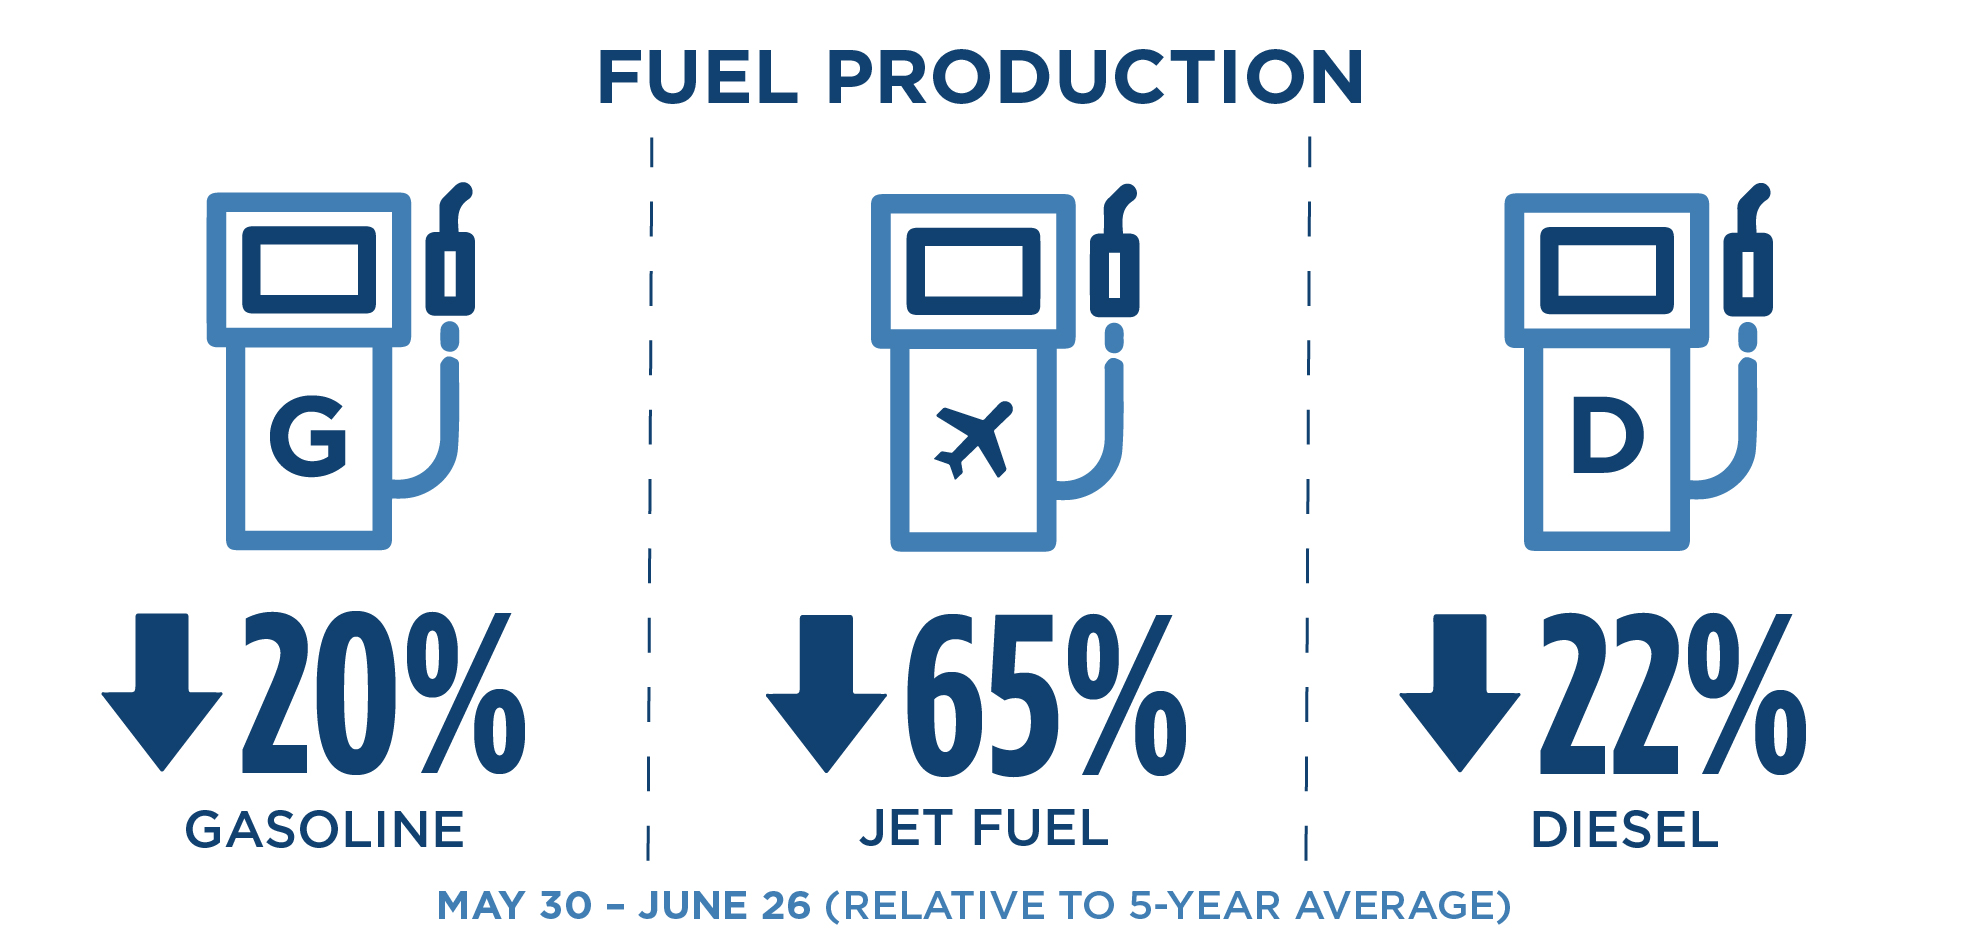 Infographic showing the decline of California Transportation fuel production from Late May – Late June. Gasoline production declined by 20%, Jet Fuel production by 65%, and Diesel production by 22%.